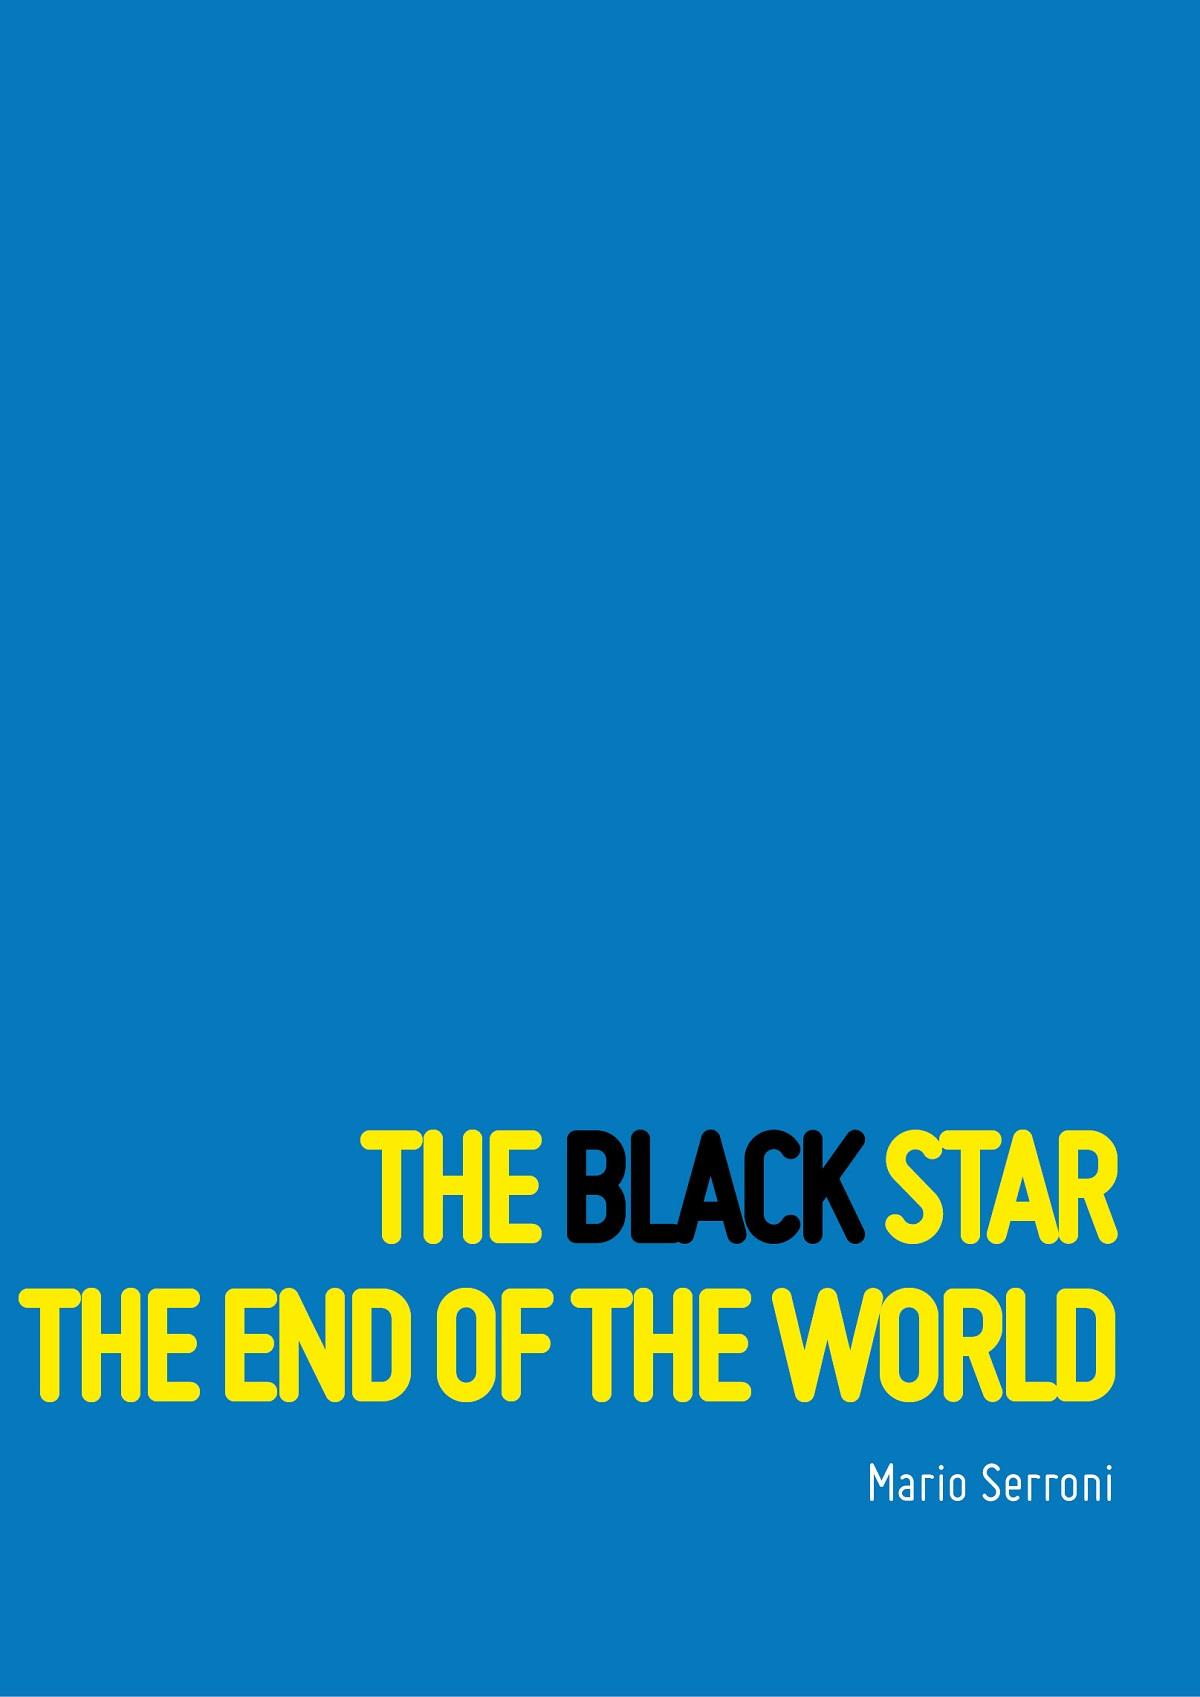 The Black Star The End of The World